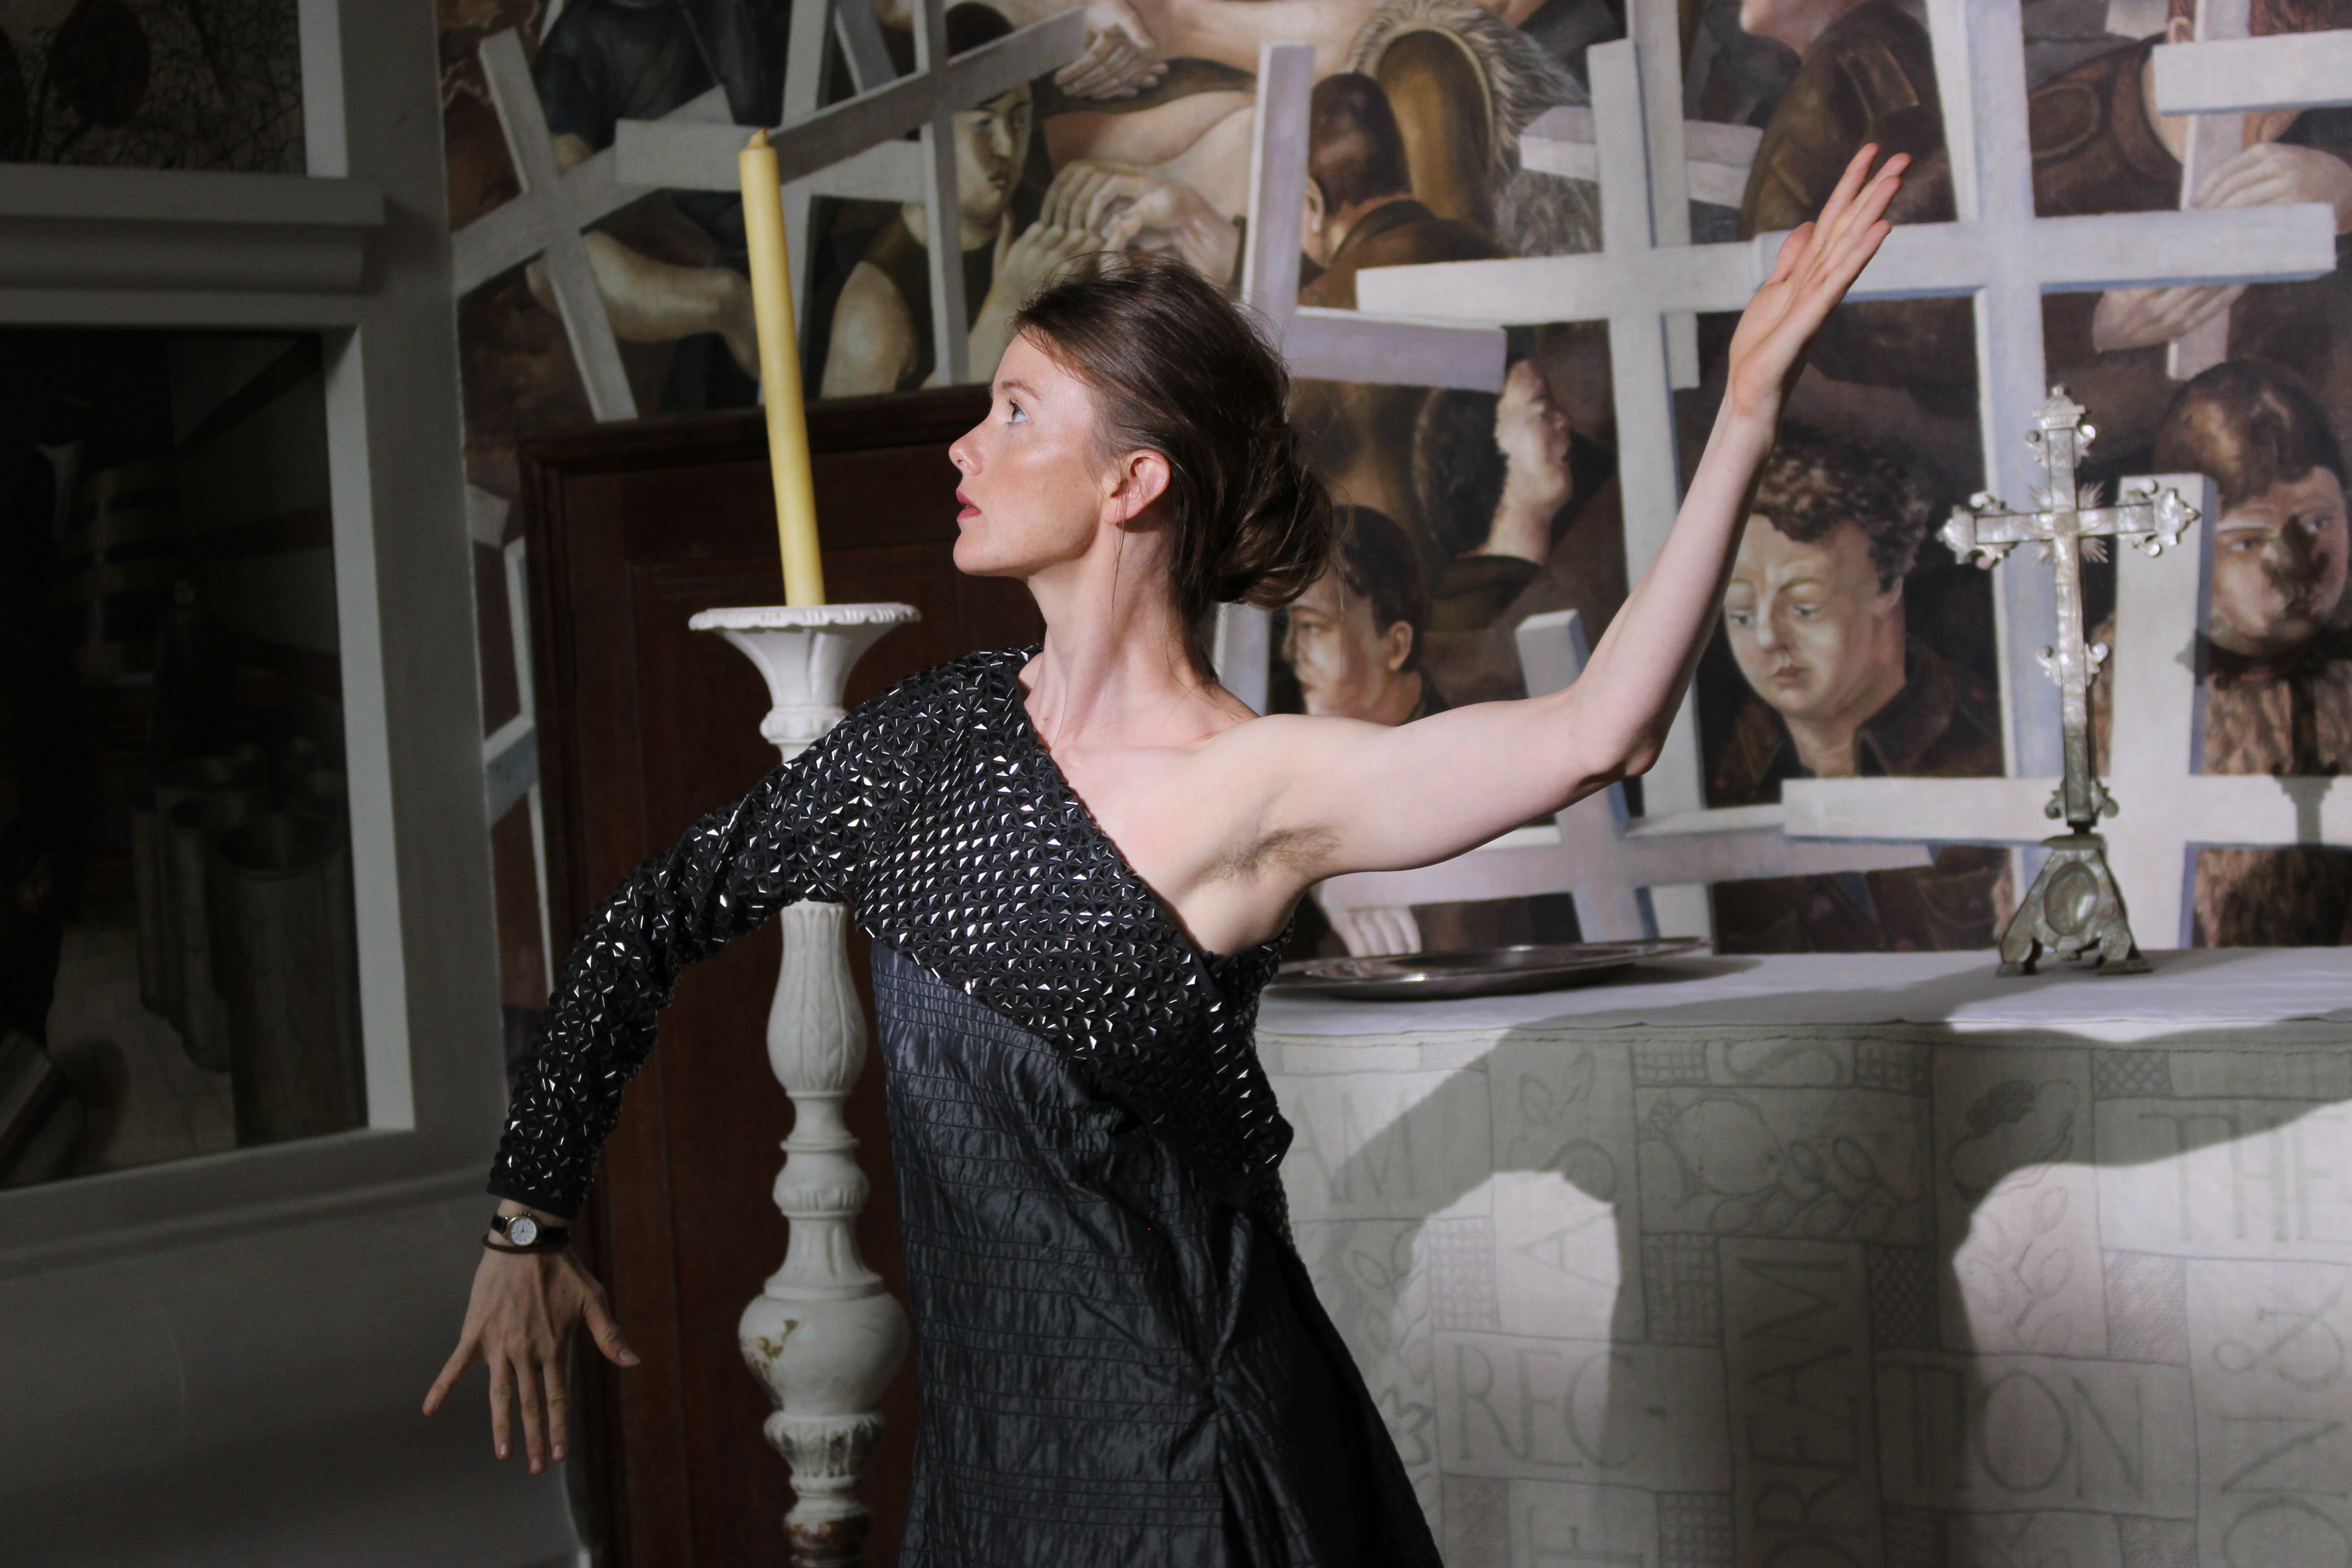 Sonya Cullingforth as Satan, dancing in the Spencer Memorial Chapel, 2018